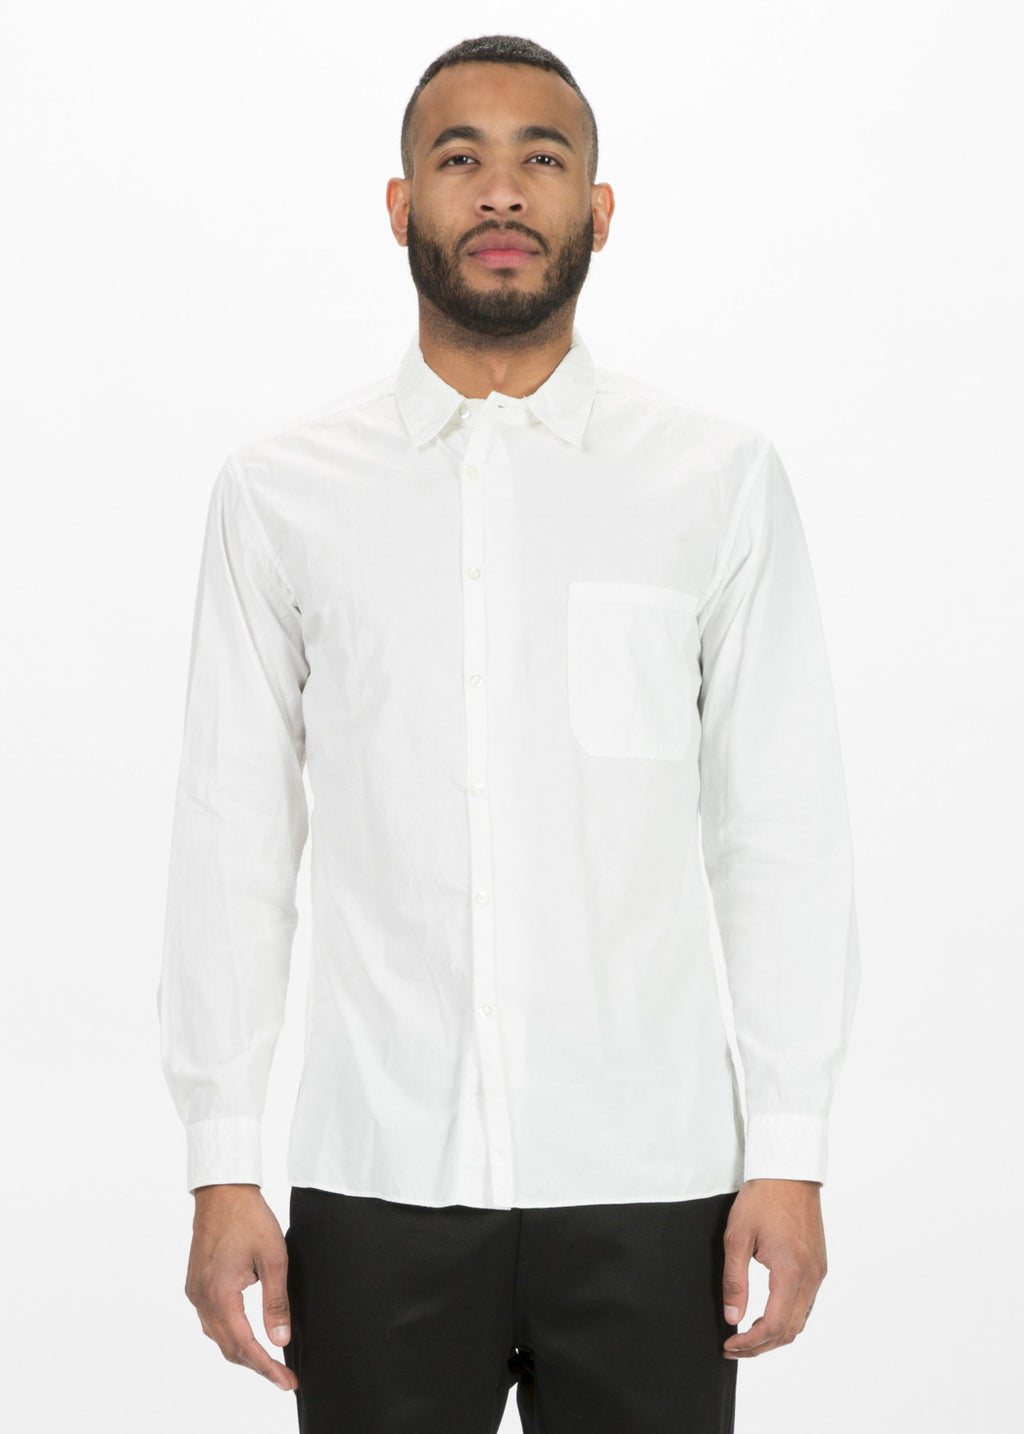 Off-Center Button Up Shirt